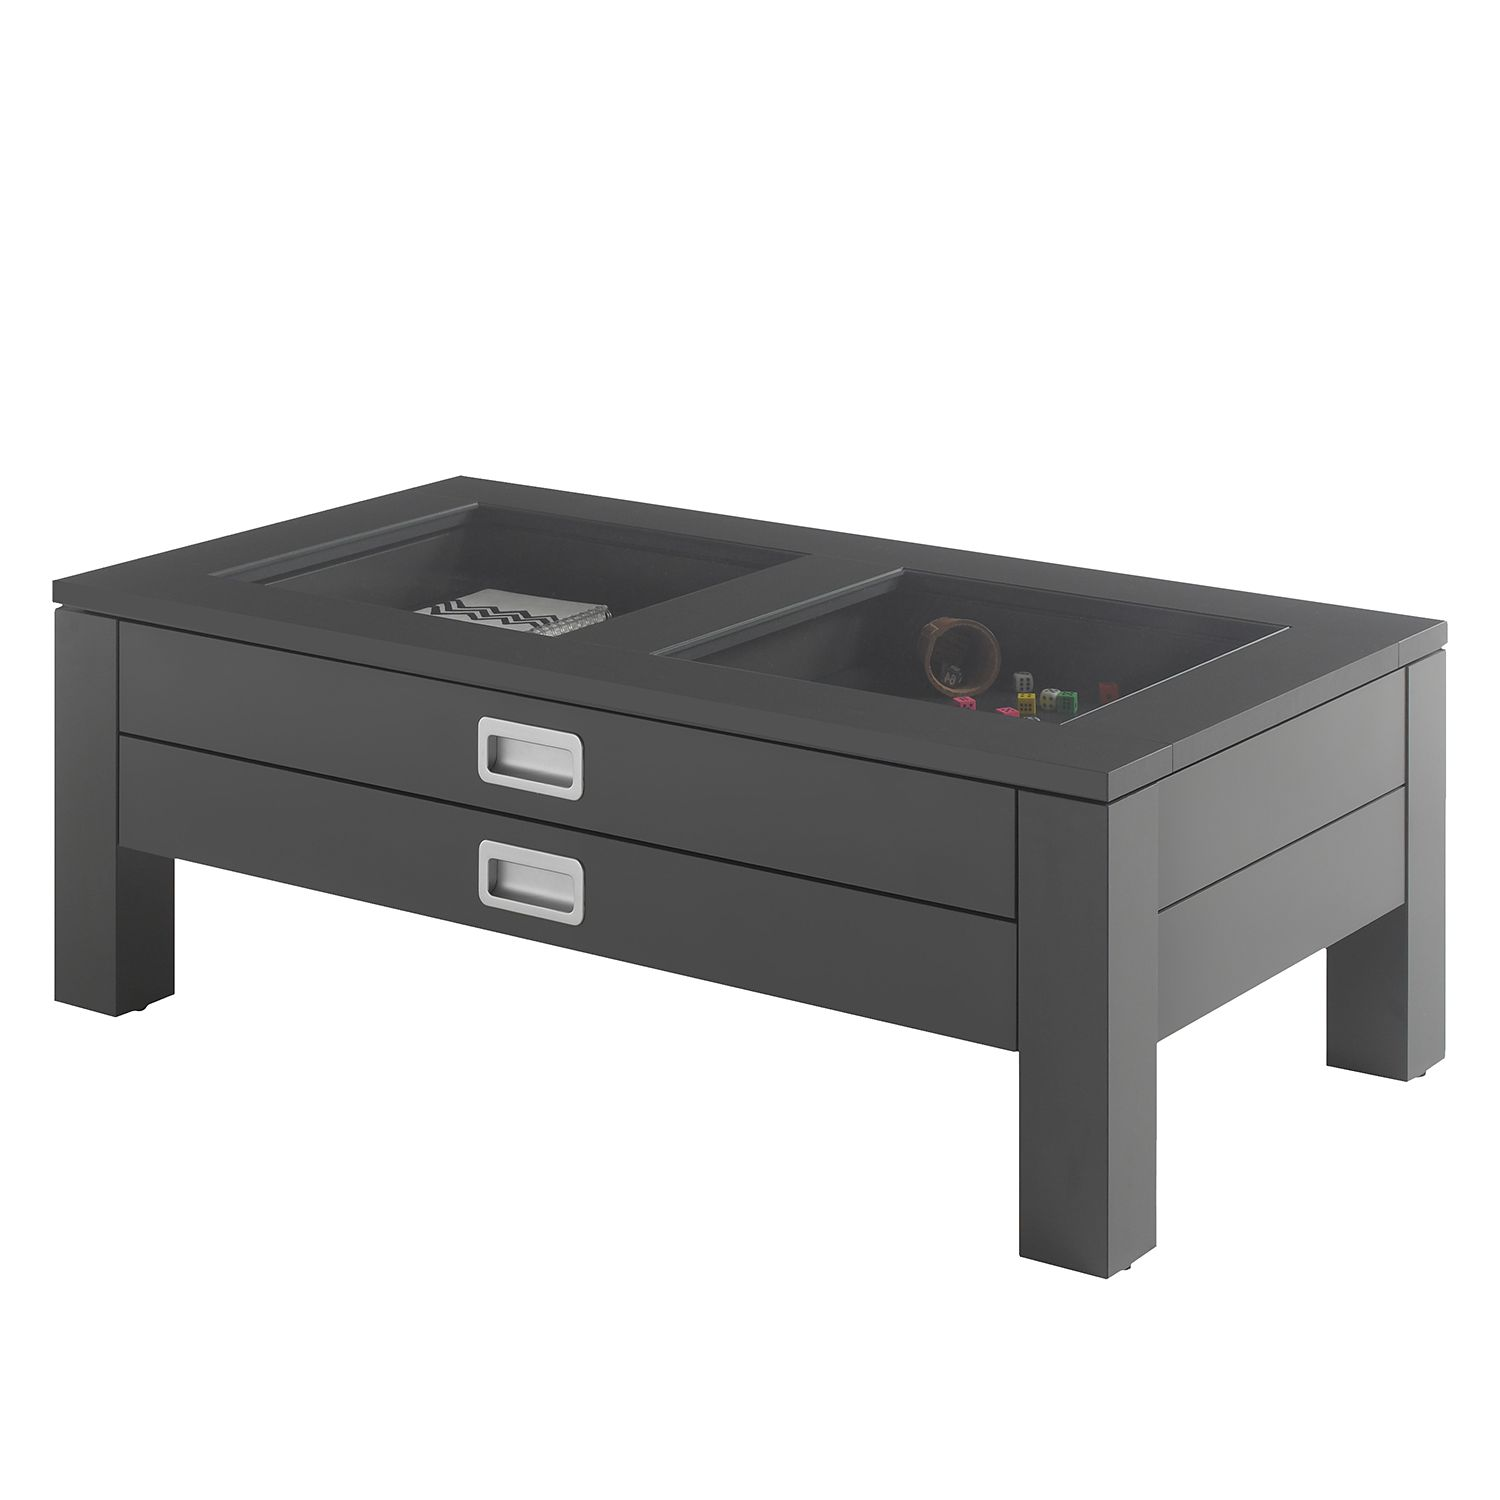 Table basse Canora - Anthracite, mooved